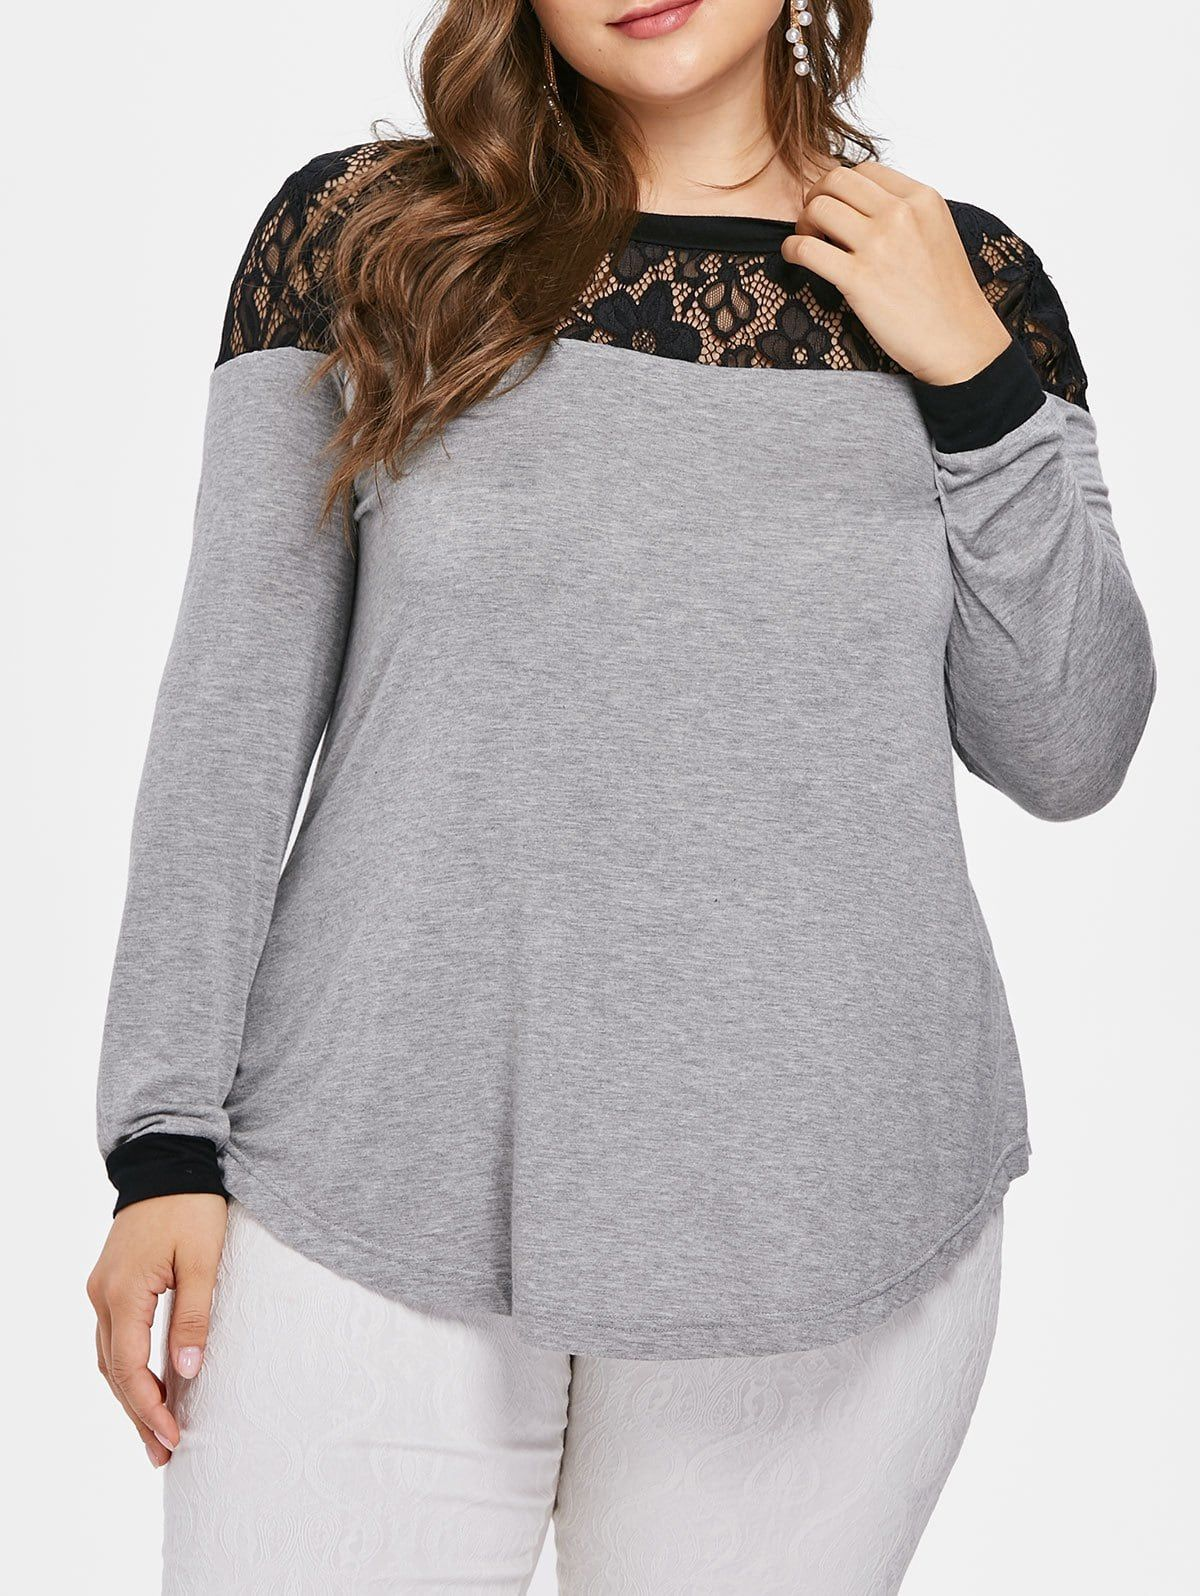 c4b662257b8 Plus Size Sheer Lace Trim Tunic T-shirt